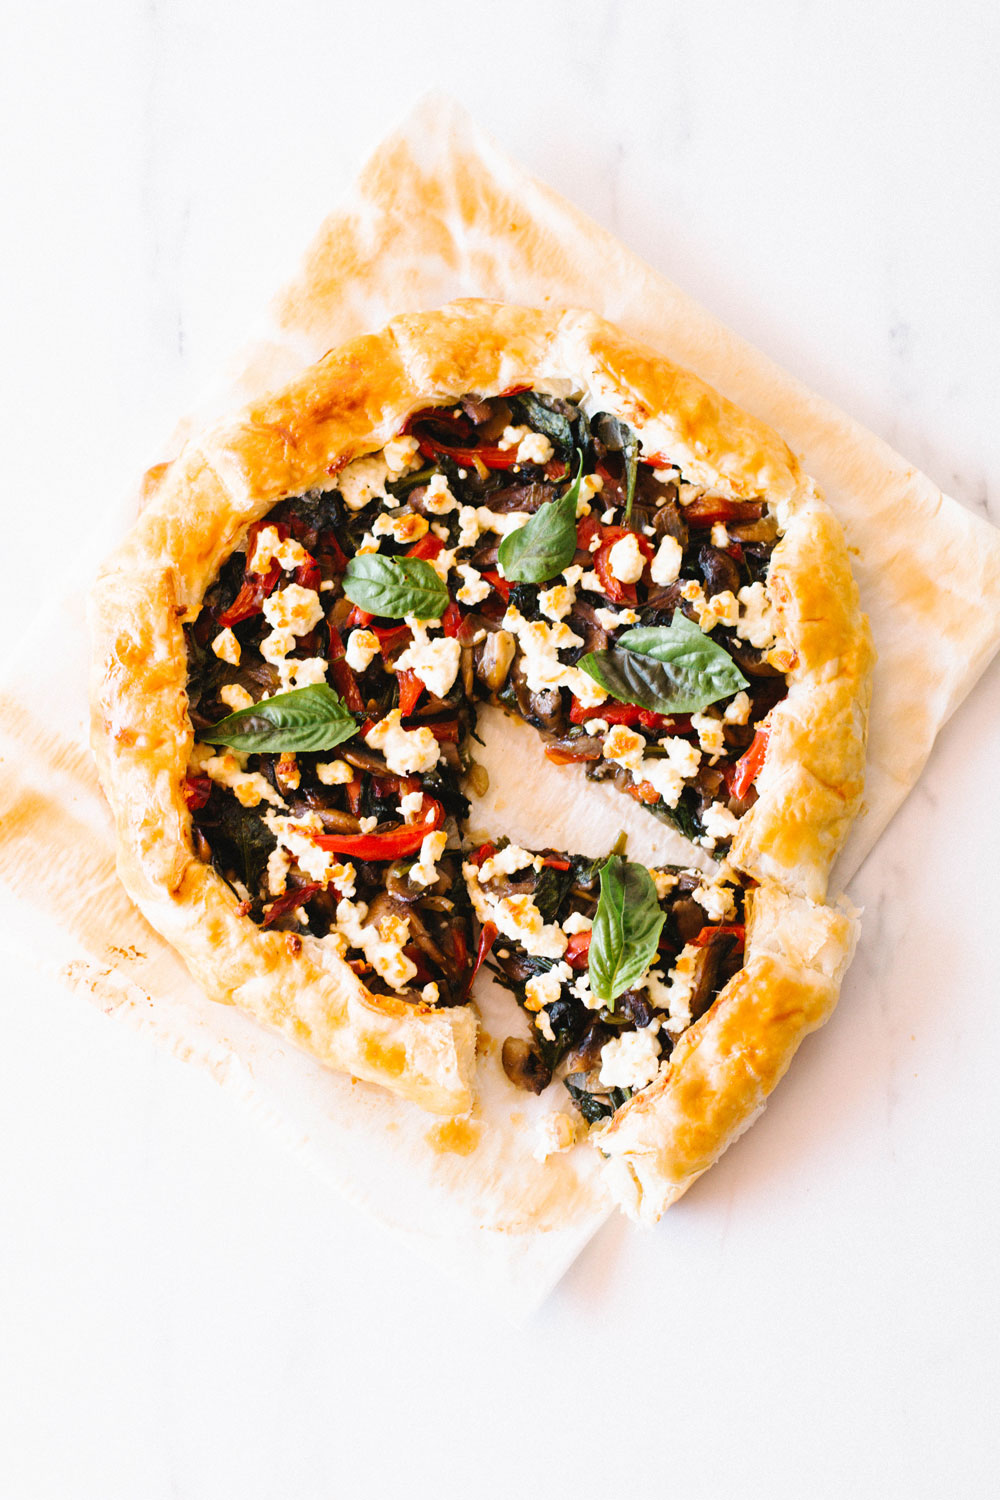 Impress your family and friends with this Mushroom, Spinach, and Crumbled Feta Pie. A perfect brunch recipe that's delicious and easy to make but also nutritionally rich. https://www.spotebi.com/recipes/mushroom-spinach-crumbled-feta-pie/